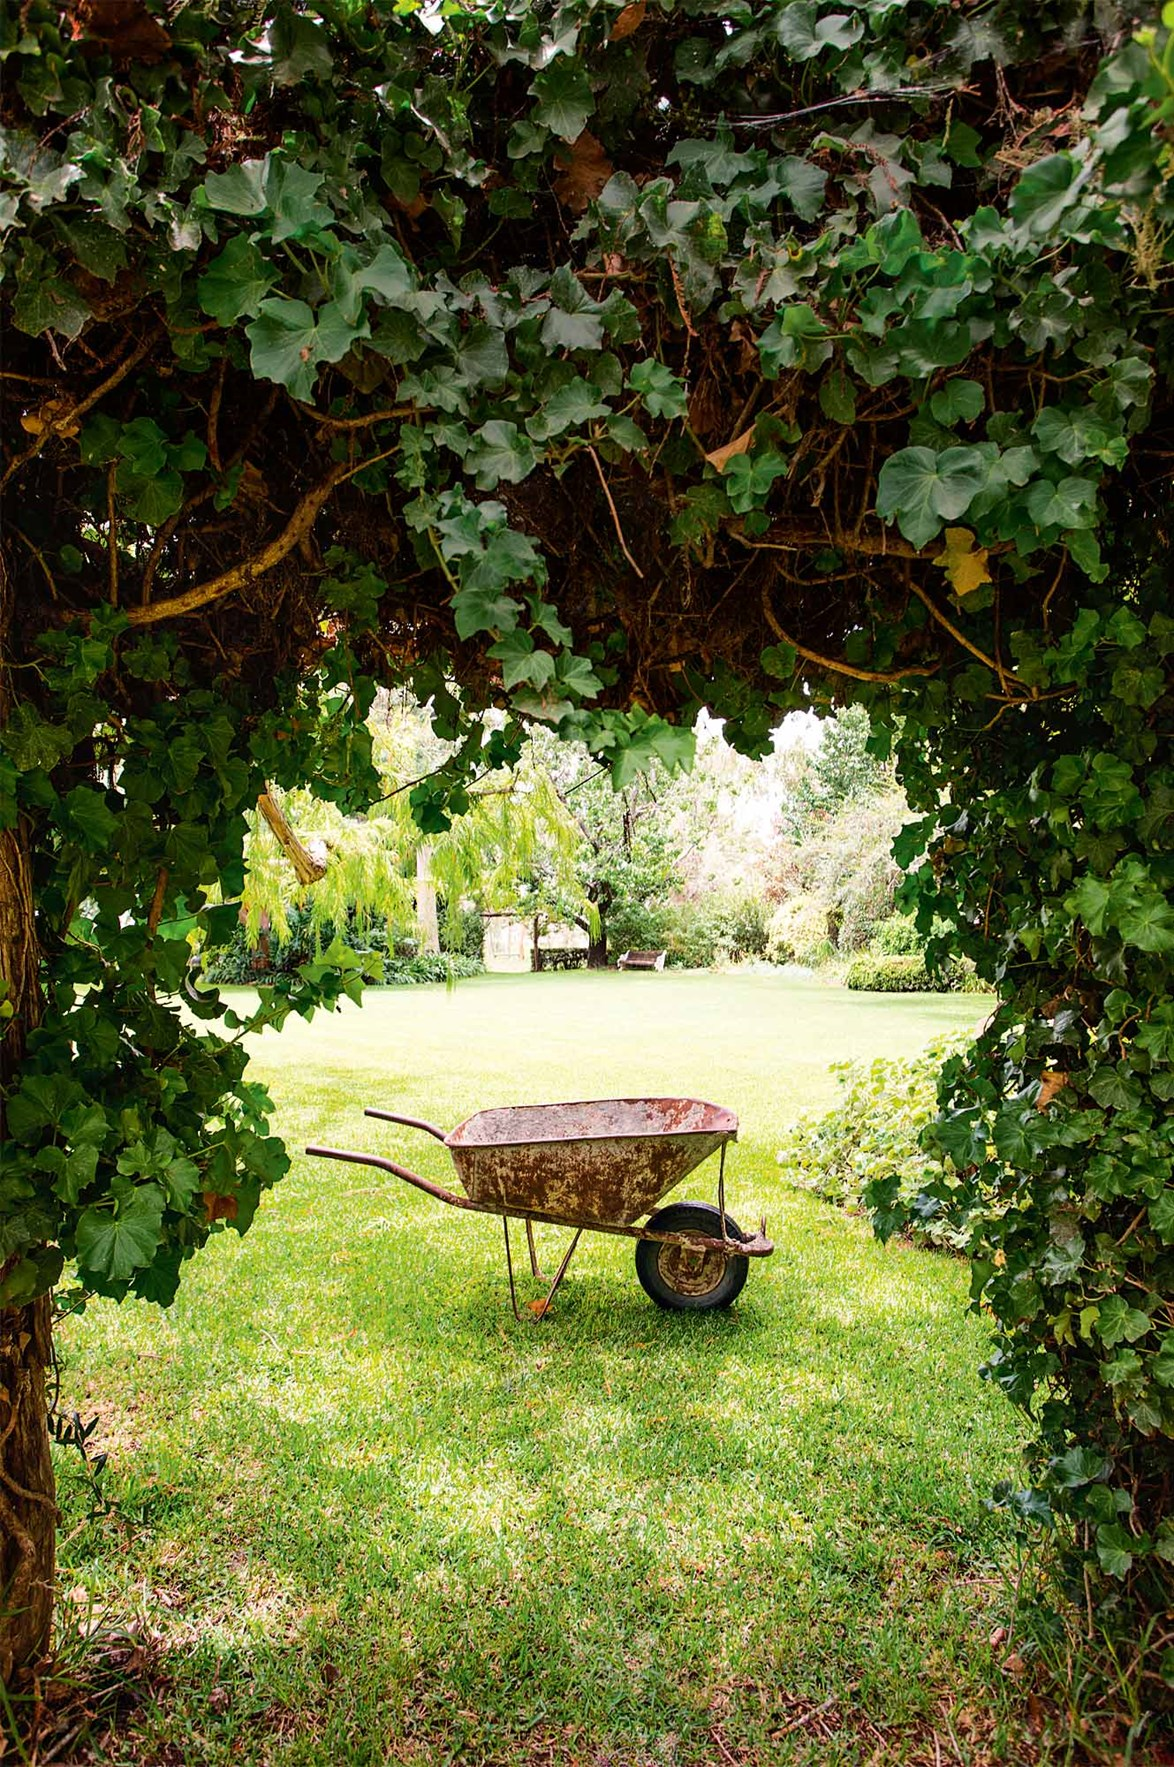 A rusty old wheelbarrow can be given a new life as a garden bed. Just add drainage holes, fill with soil and plant it out with herbs or flowers.